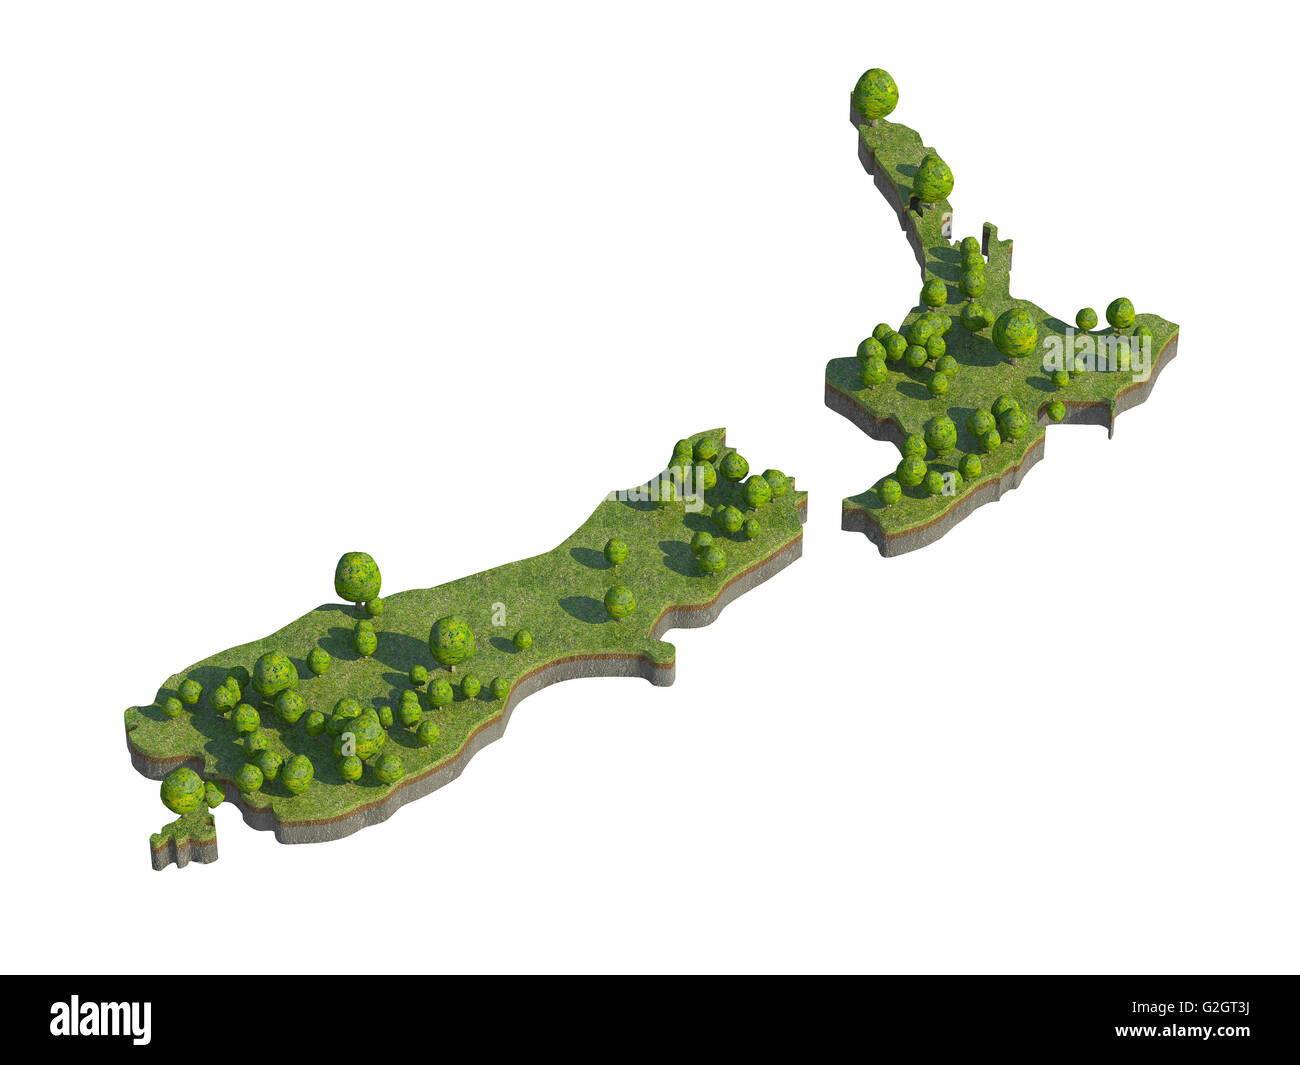 3d Map Of New Zealand.3d Render Of New Zealand Map Section Cut Isolated On White With